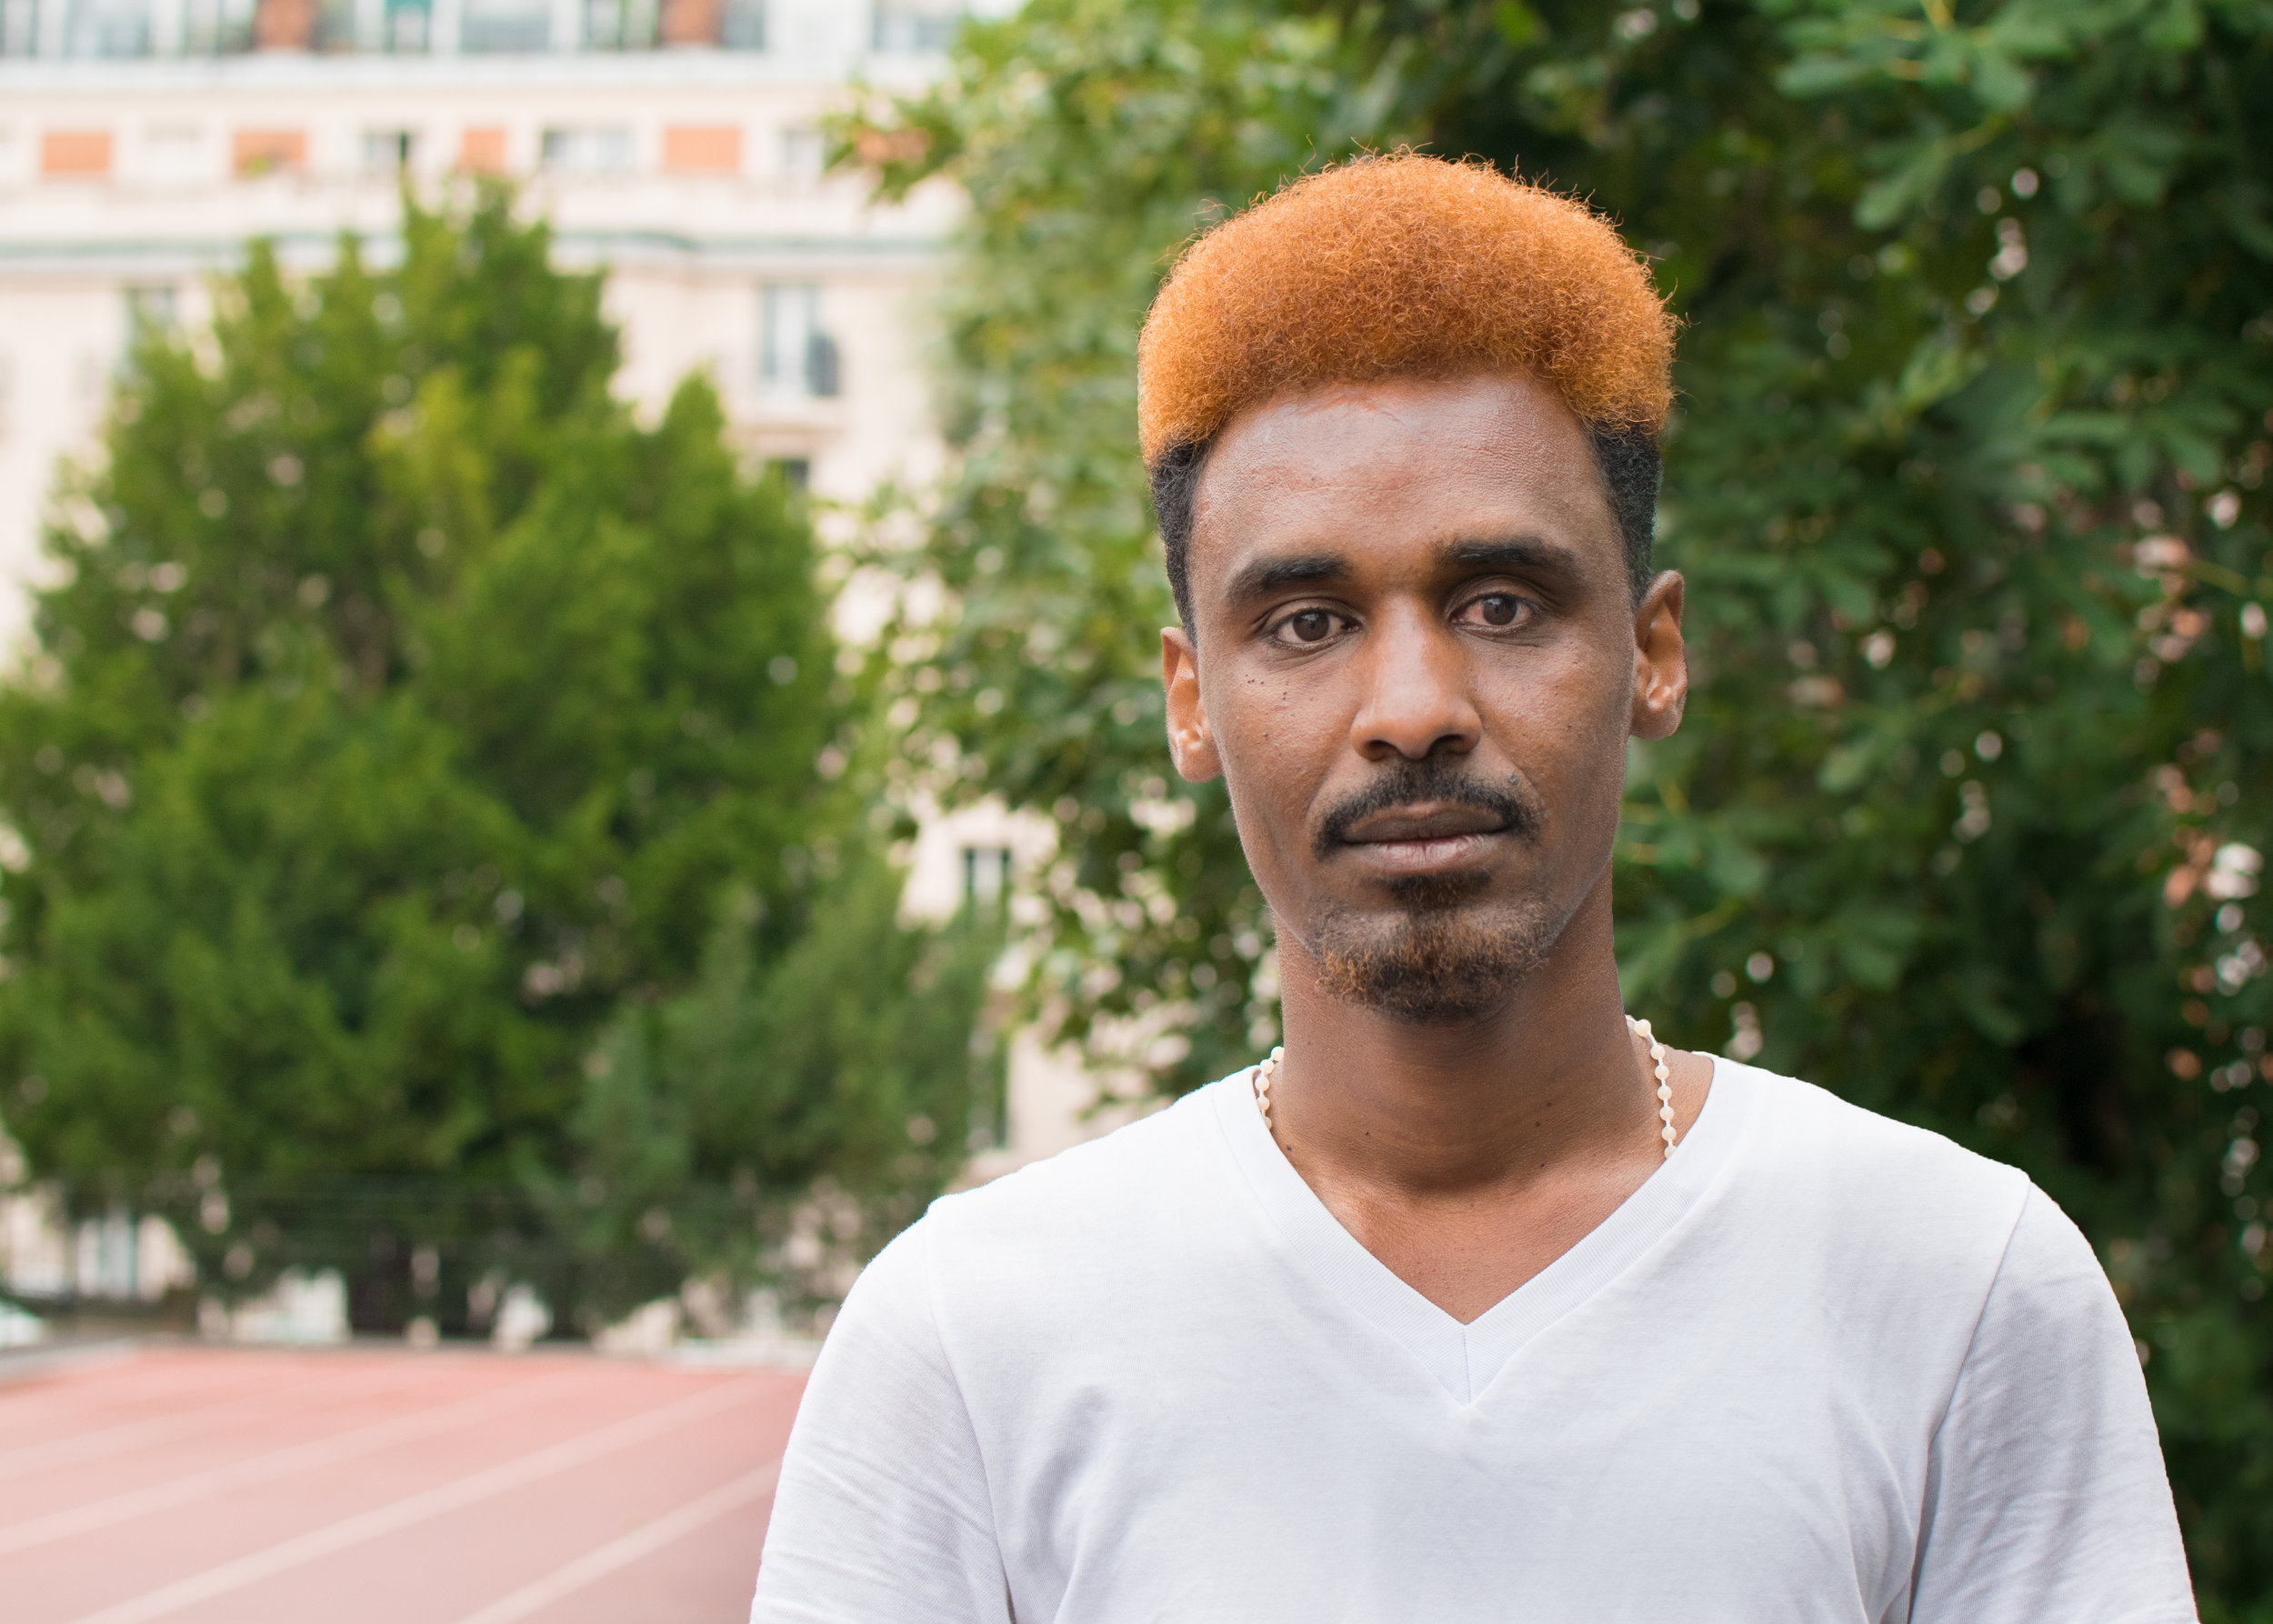 Beyene - I like that I have food to eat and a roof over my head, I just wish I could help my family like I setout to do.